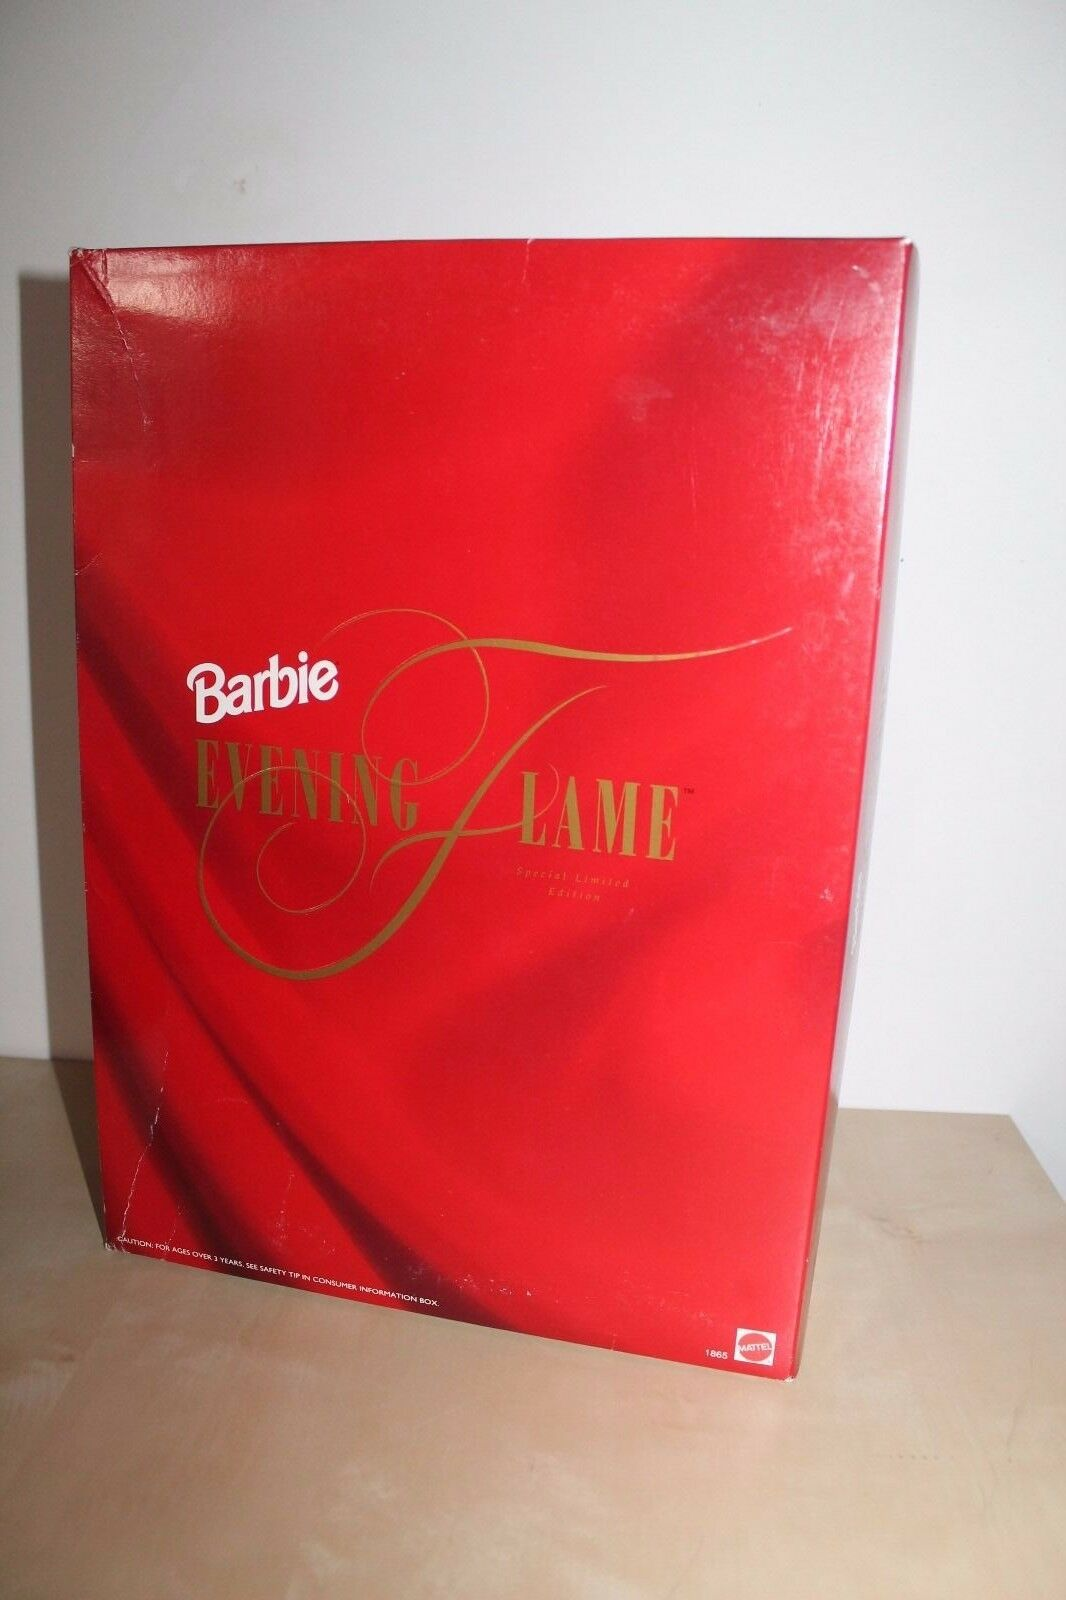 Barbie Evening Flame Red Gown Dress Special Limited 1995 Edition Mattel 1995 Limited NRFB 07ac26